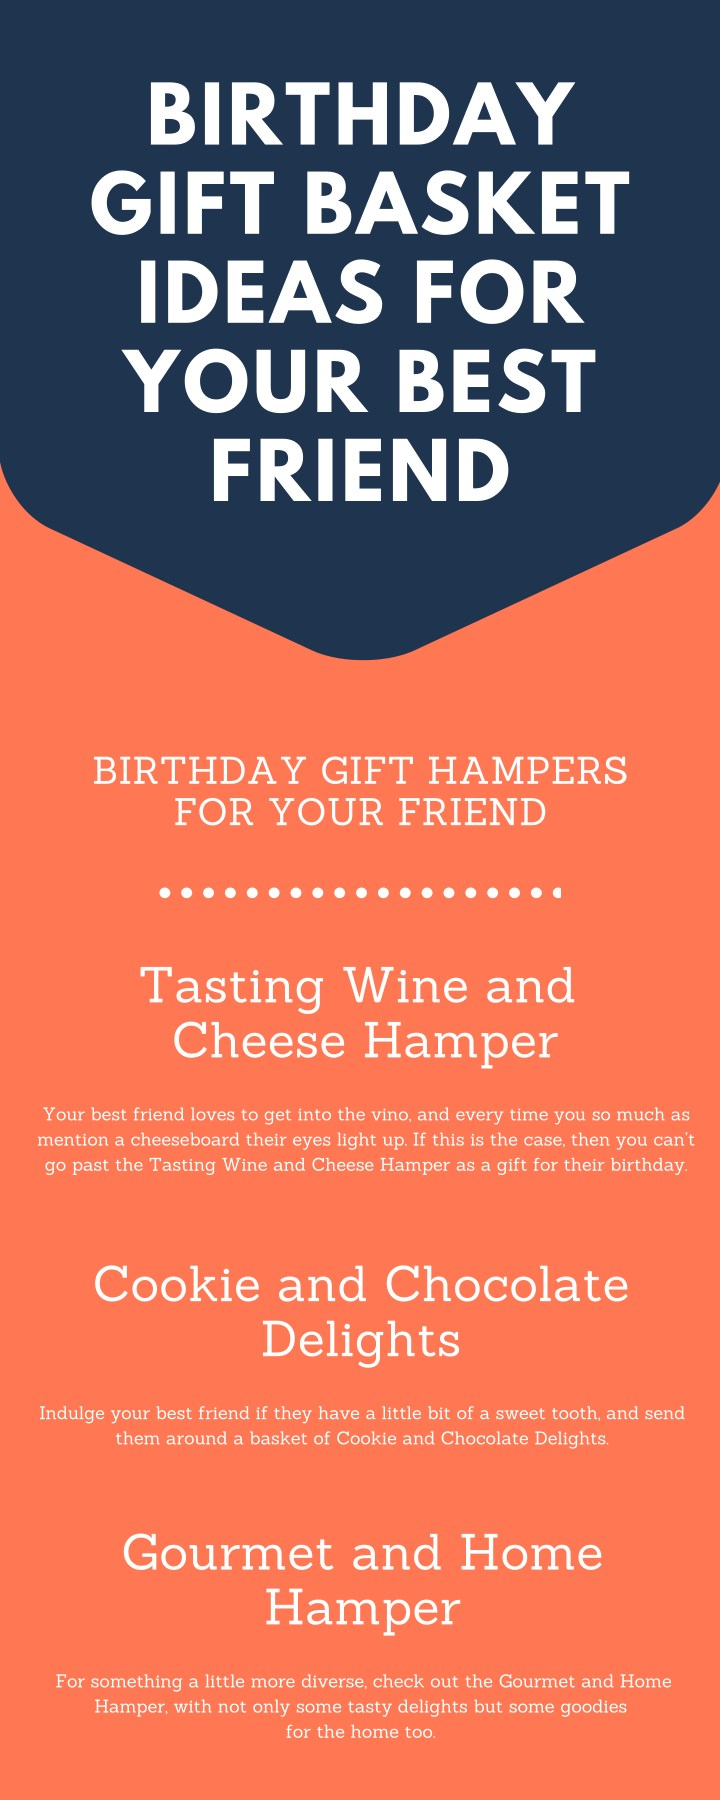 Birthday Gift Basket Ideas For Your Best Friend BIRTHDAY